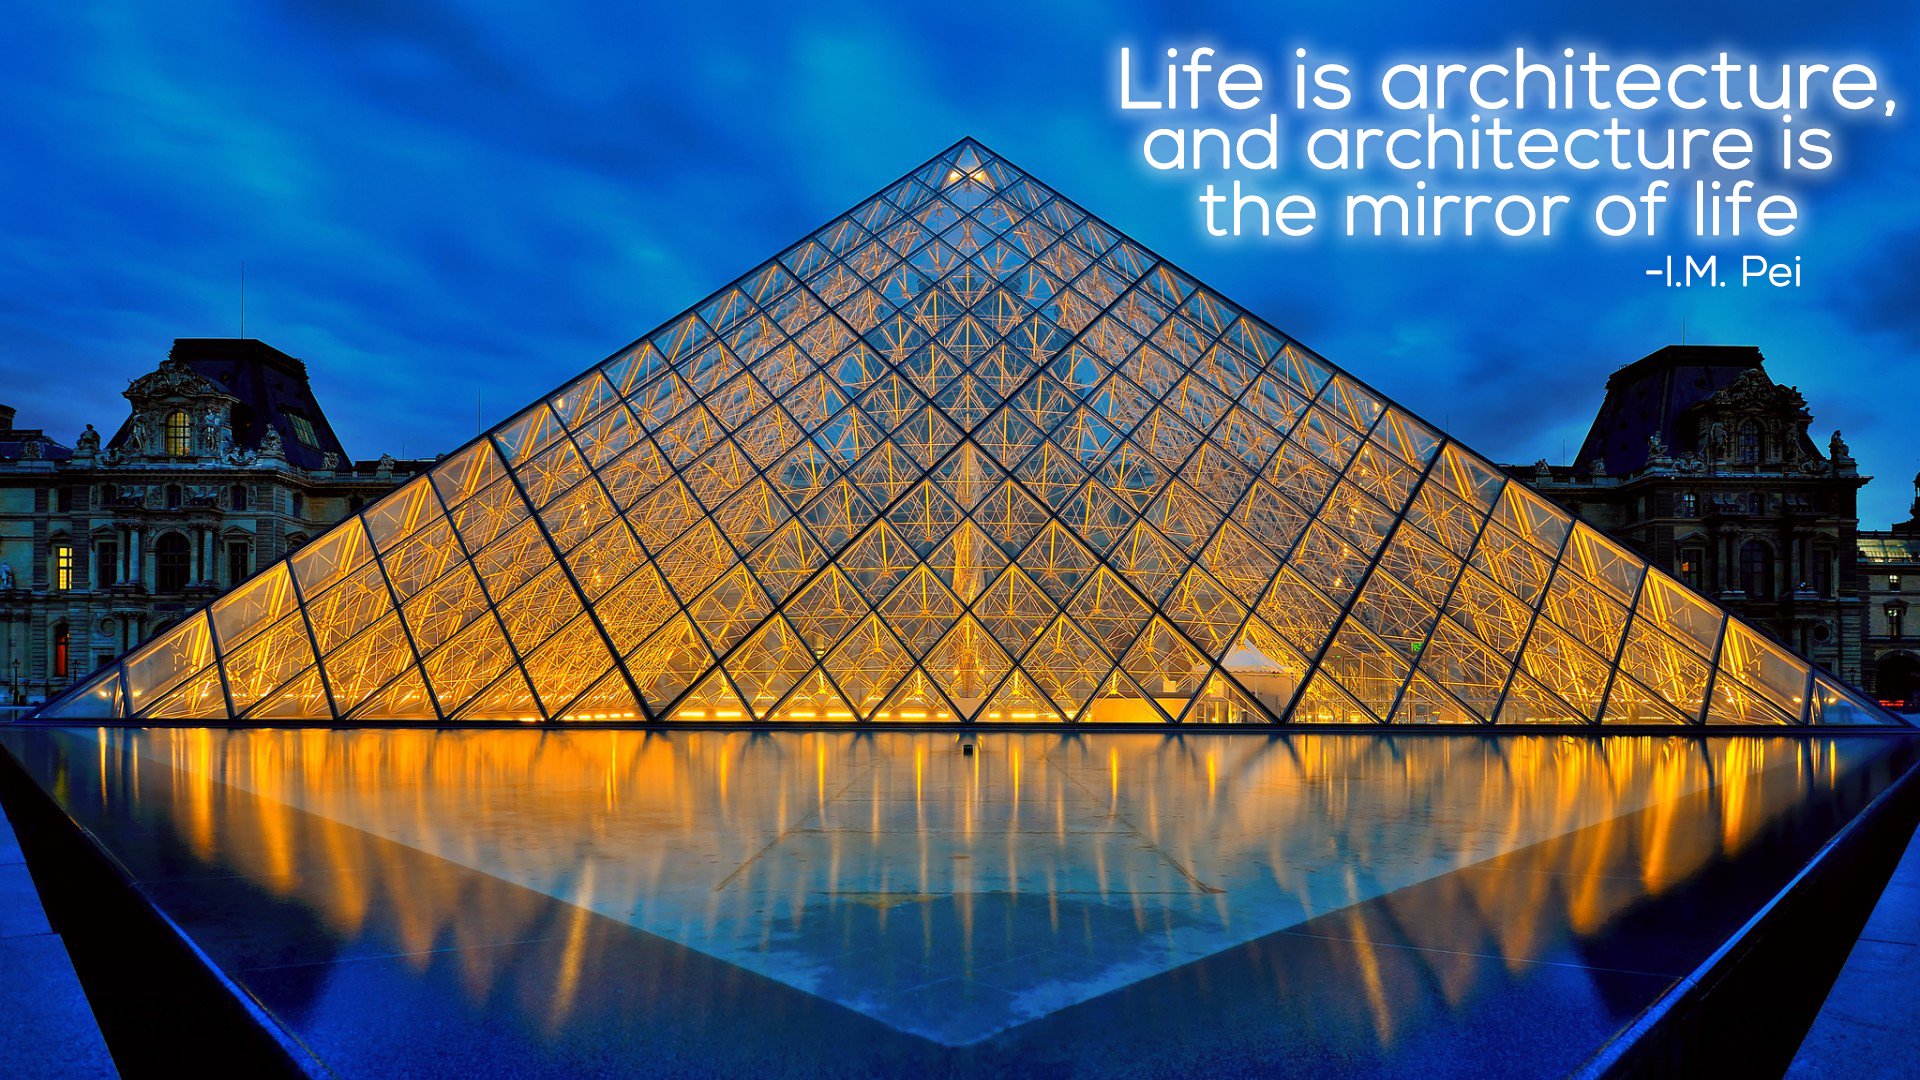 Musee de Louvre Louvre IMPei Architecture Quote Architect 1920x1080